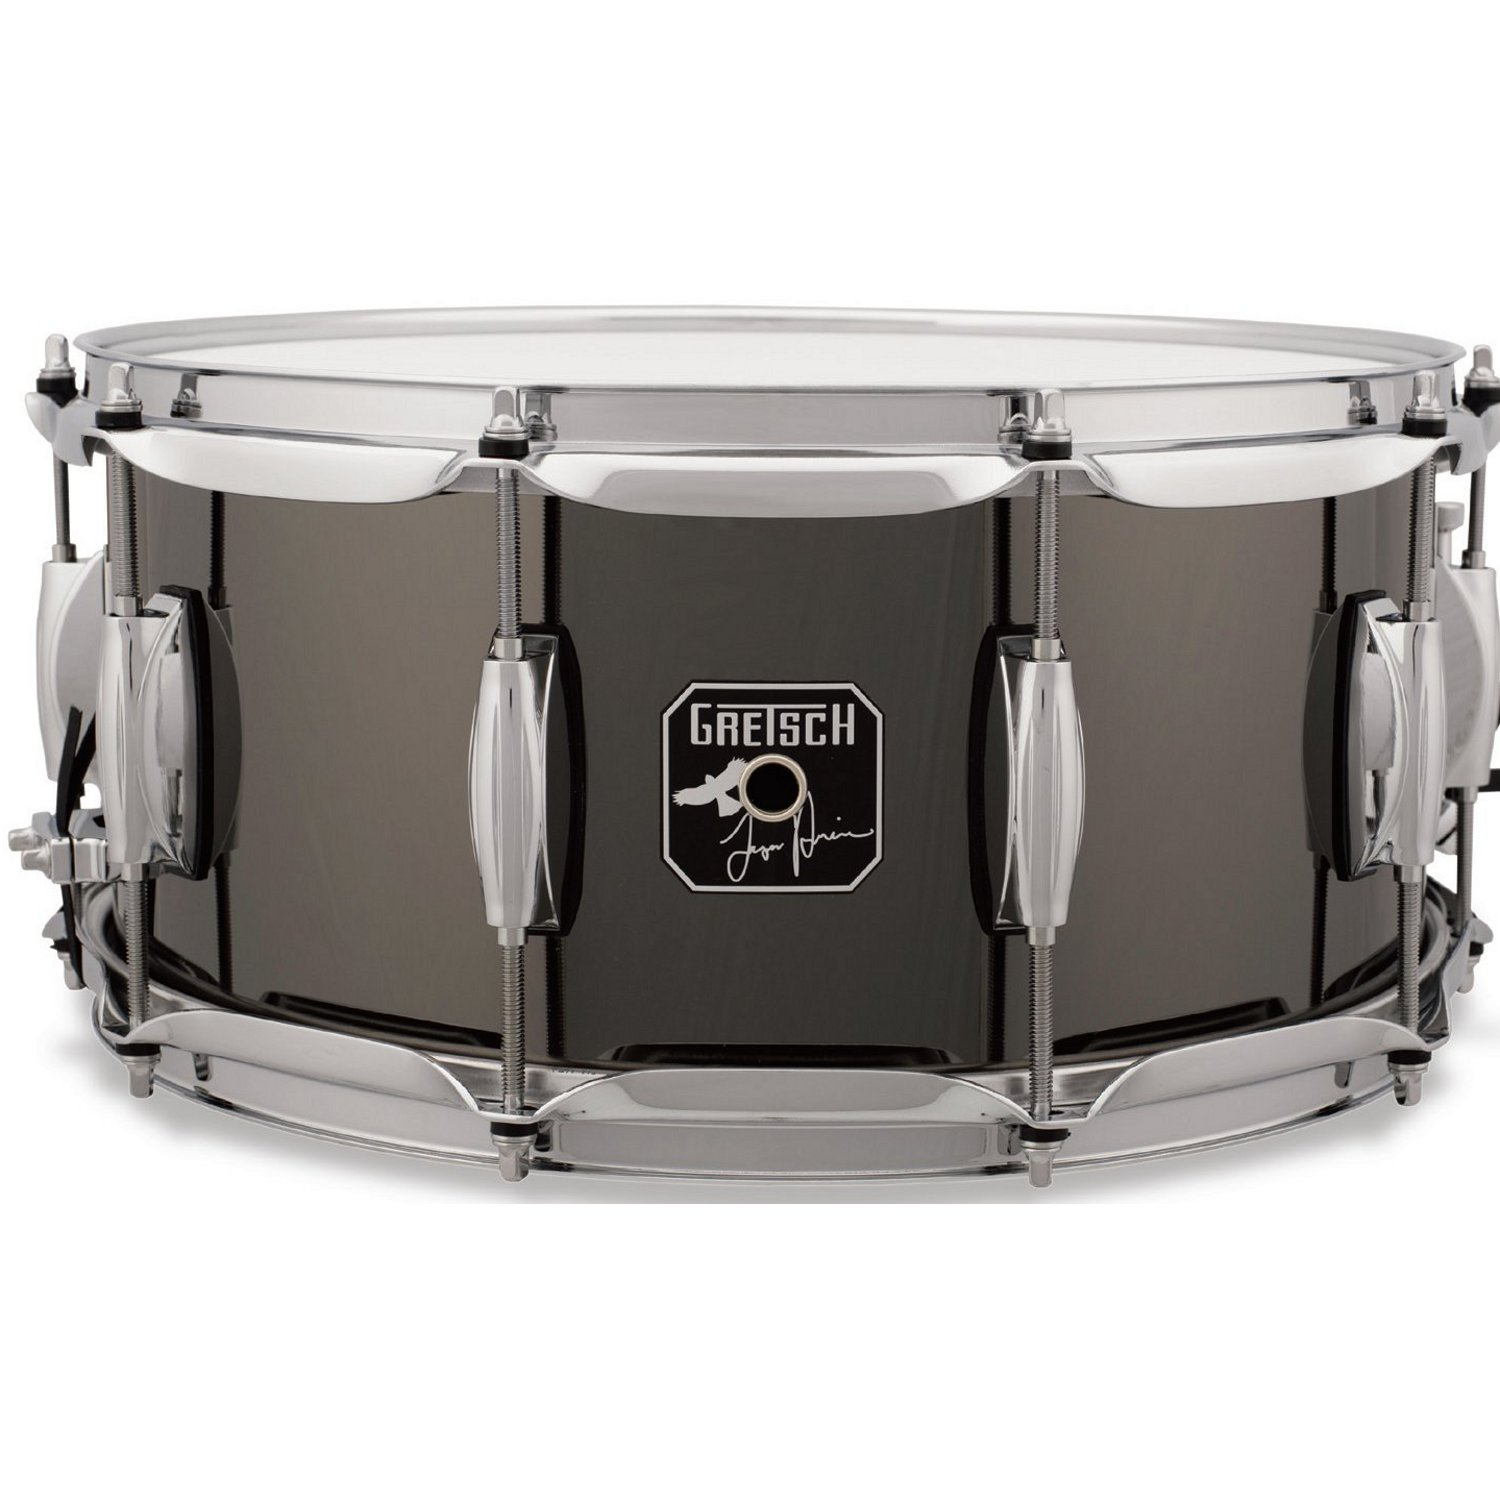 Bild von Gretsch Drums S-6514-TH Taylor Hawkins Signature Snare Drum